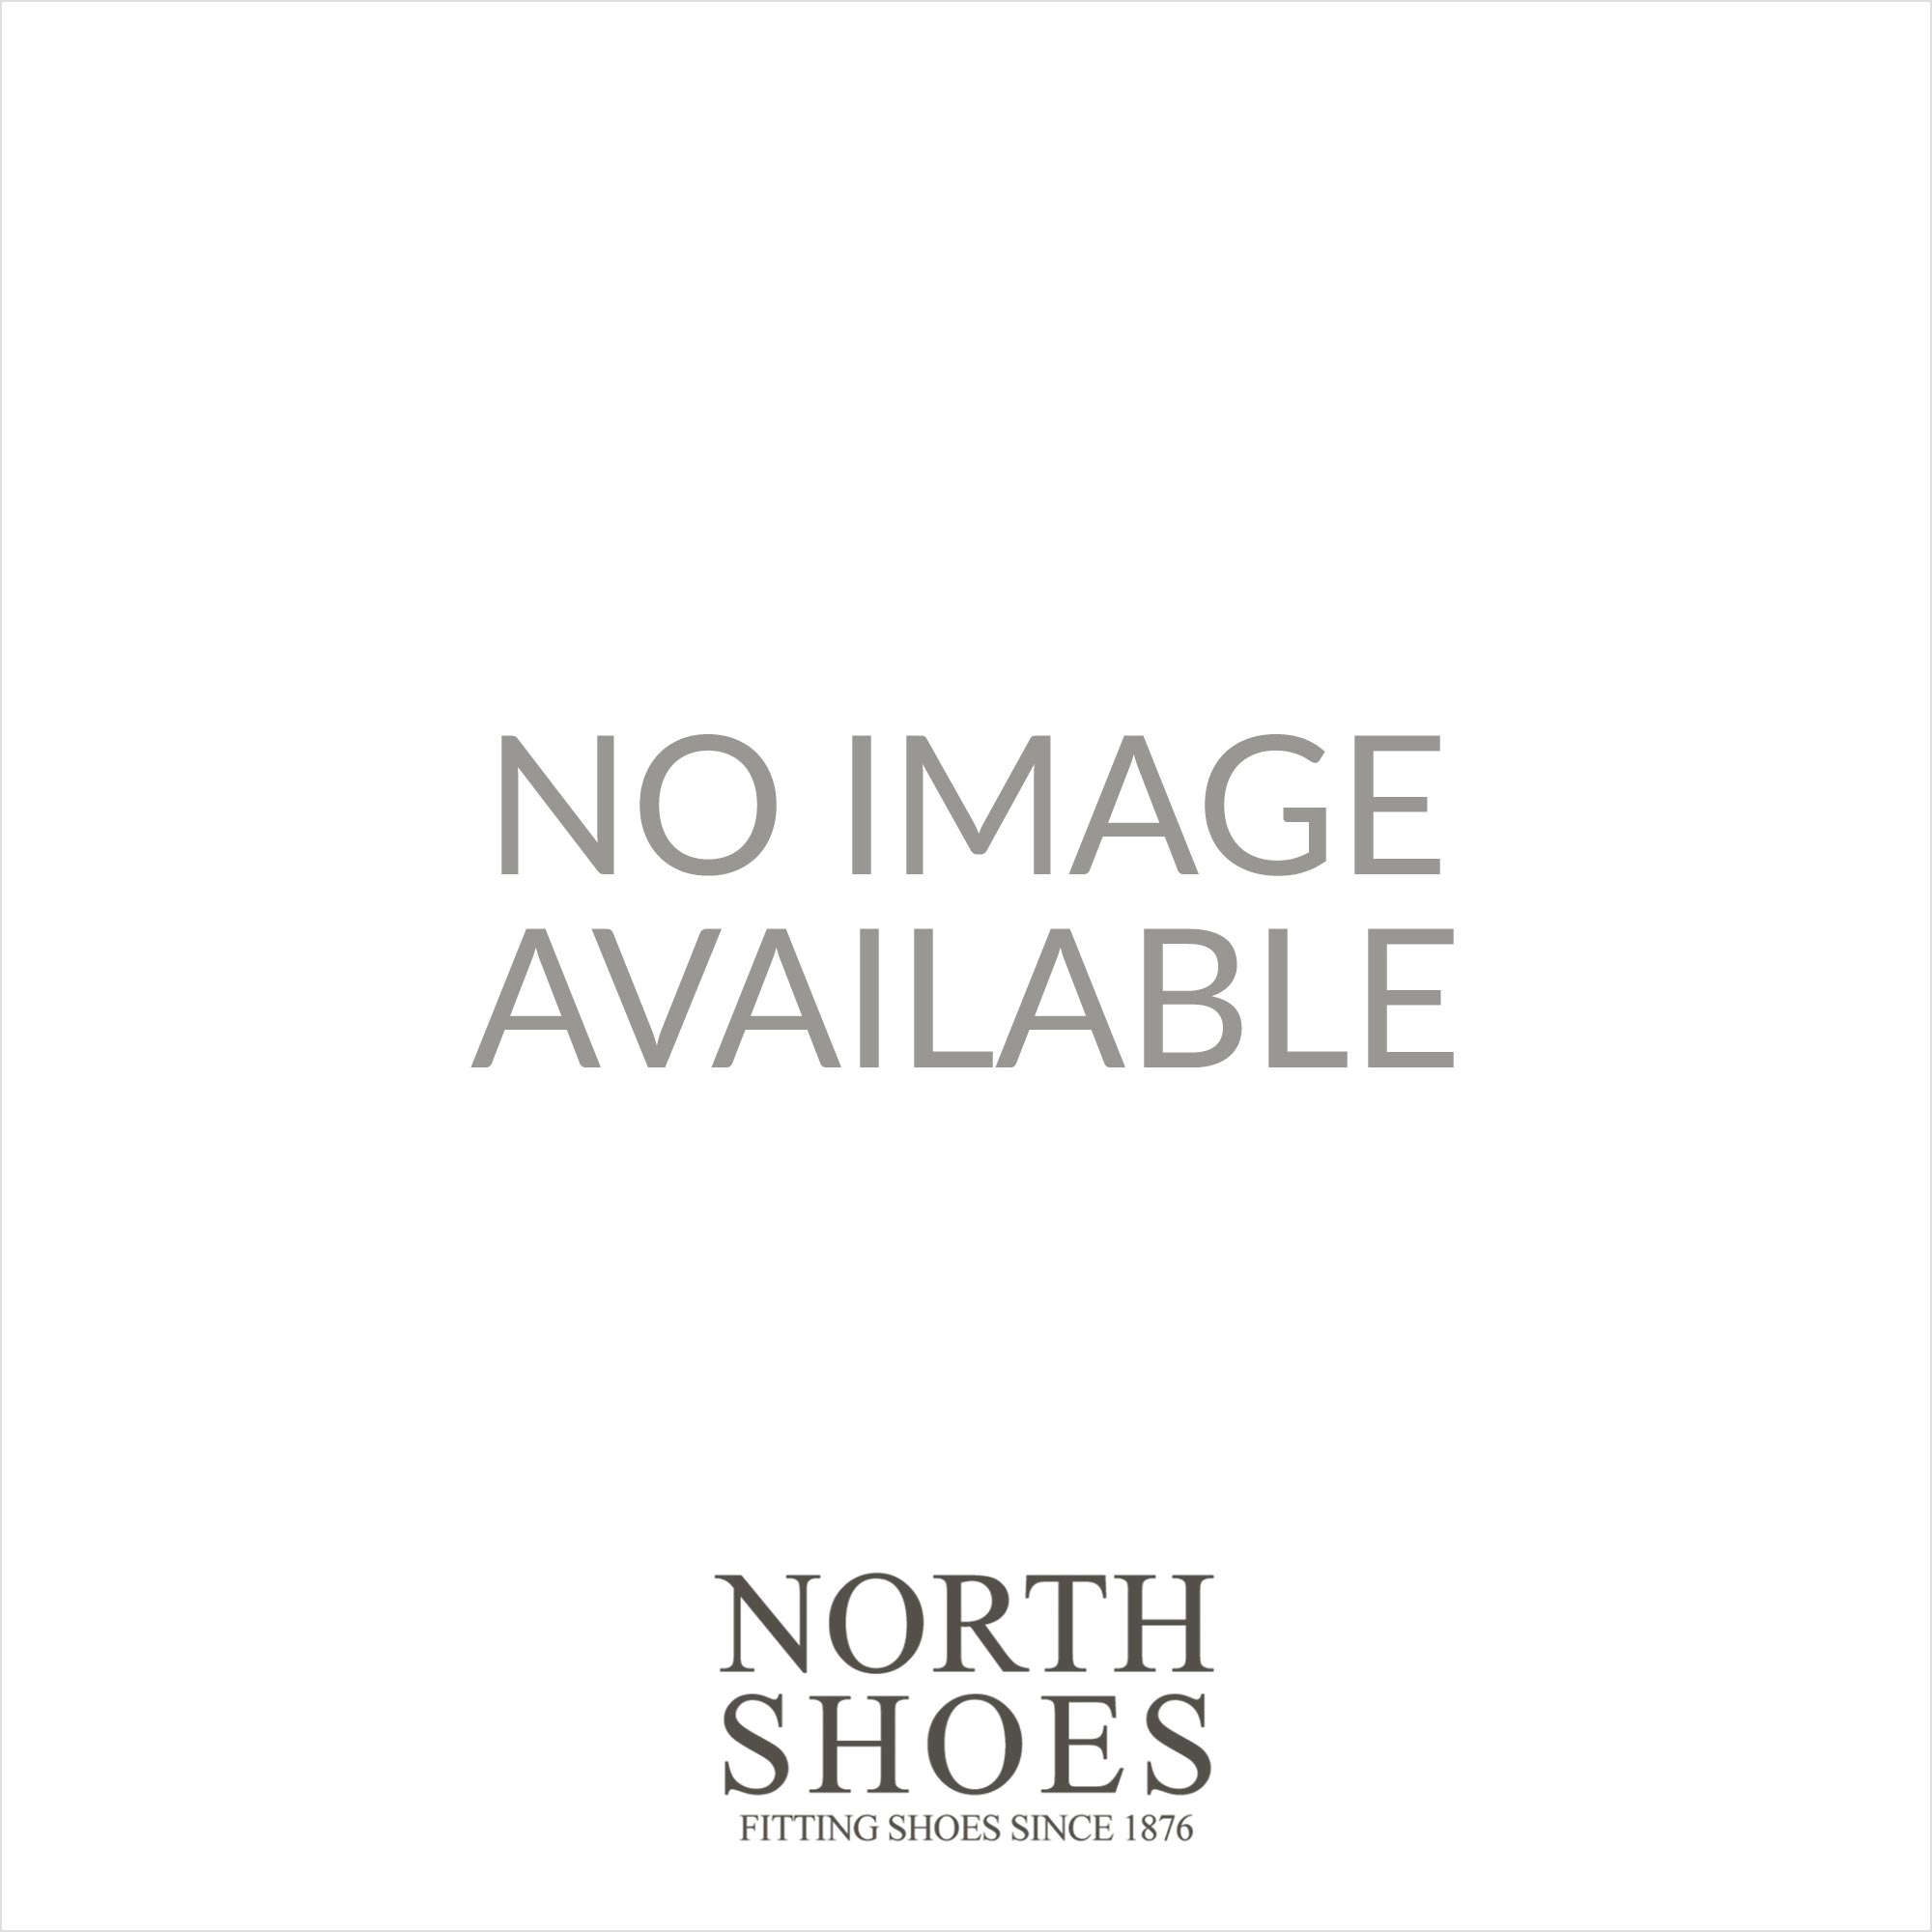 3edc78029 Fitflop LuLu Silver Nubuck Leather Womens Toe Post Sandal - Fitflop from  North Shoes UK